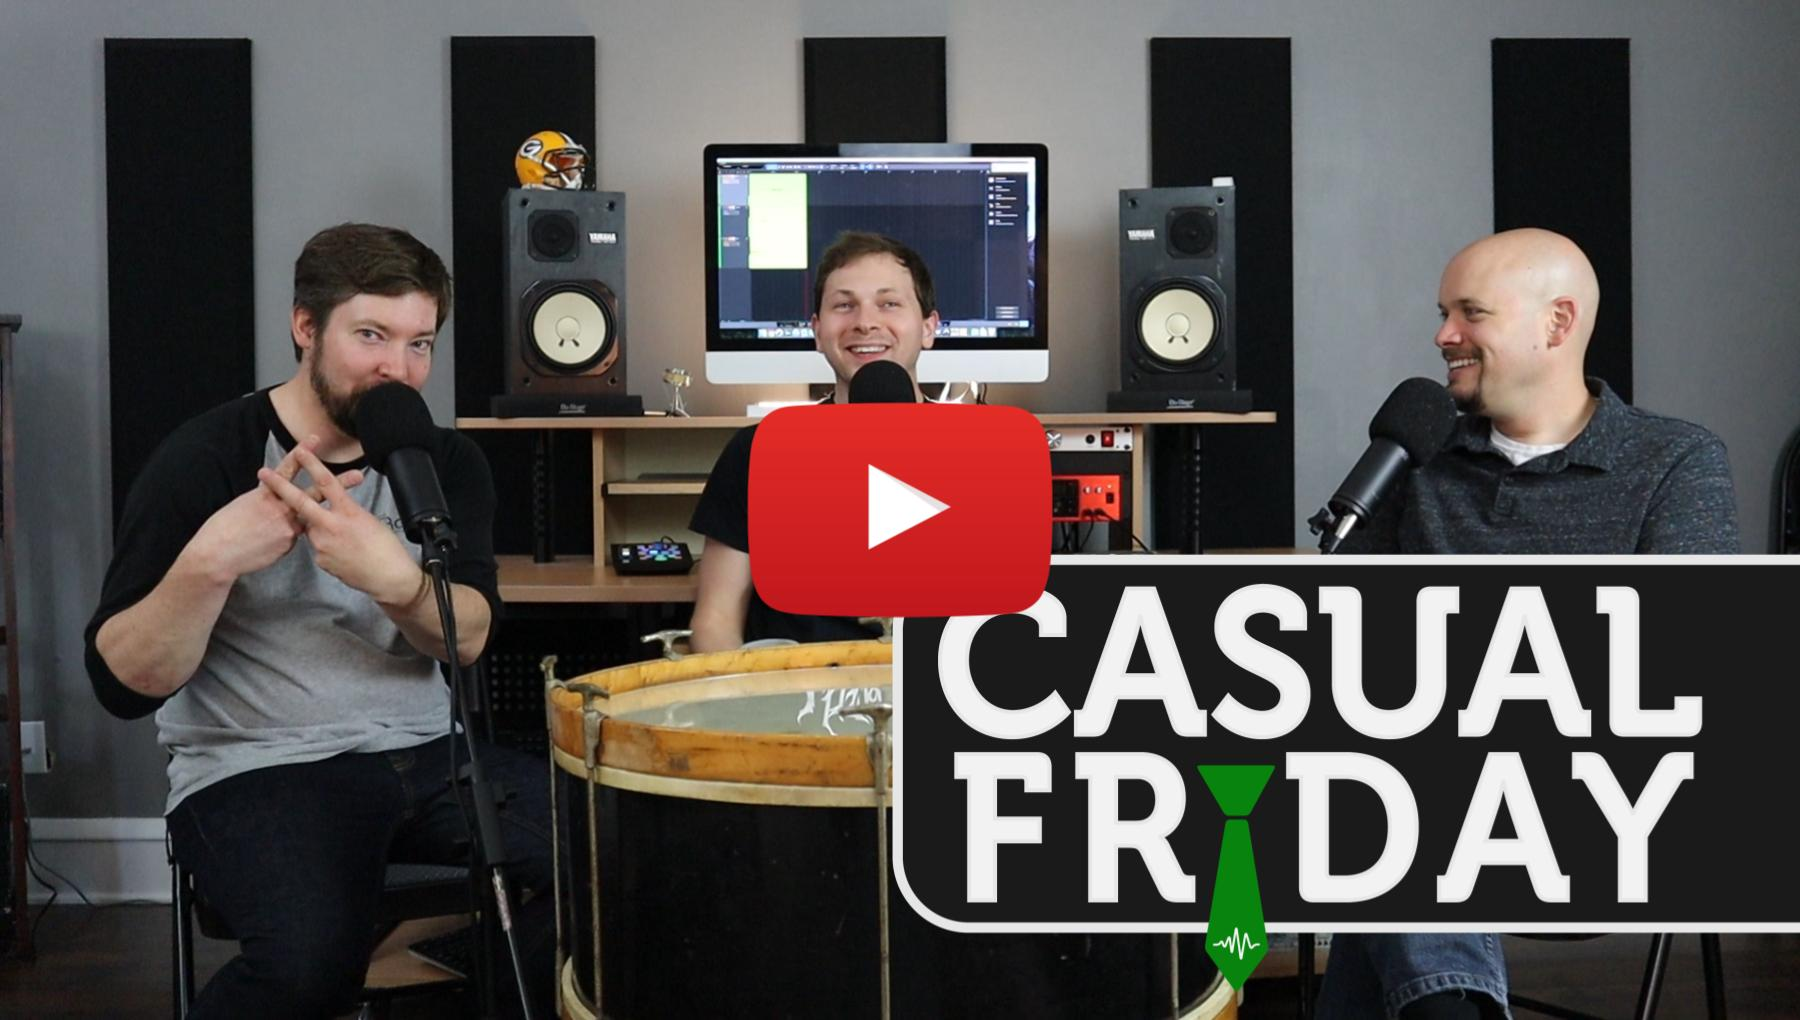 Weekly Show - PPA Unfiltered - Casual Friday June 2019